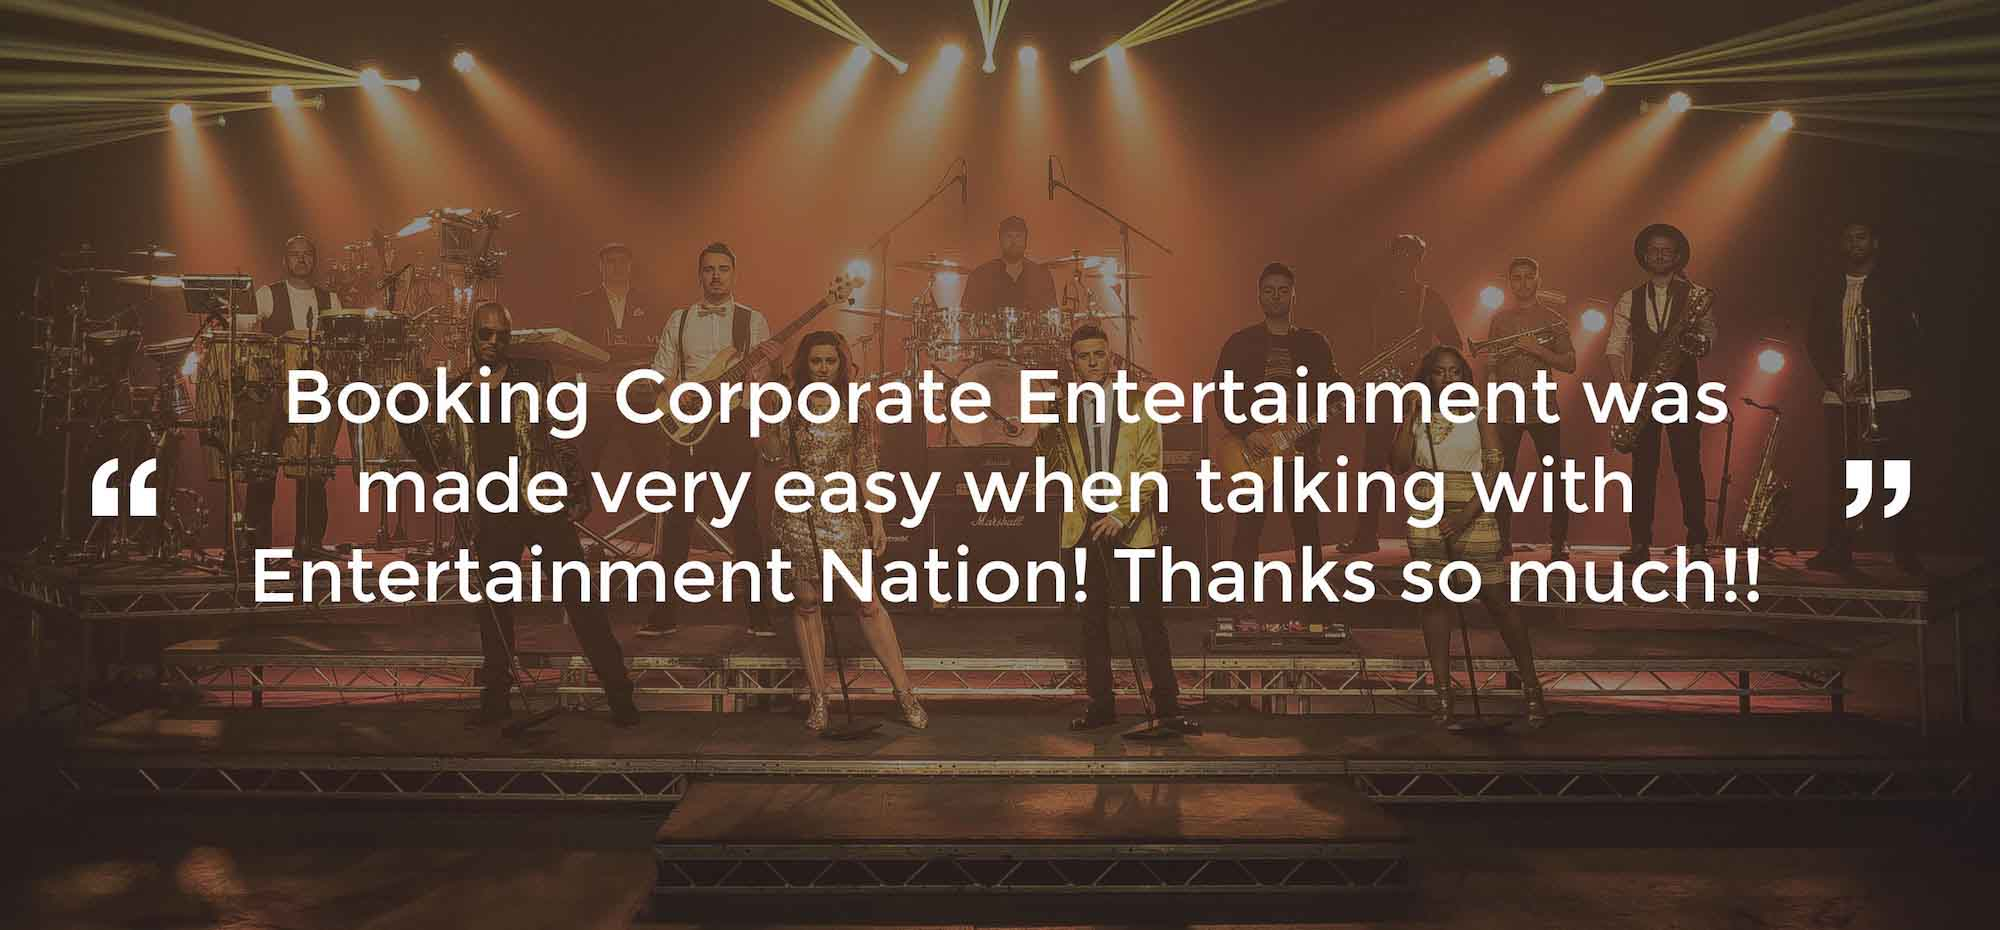 Review of Corporate Entertainment Chester